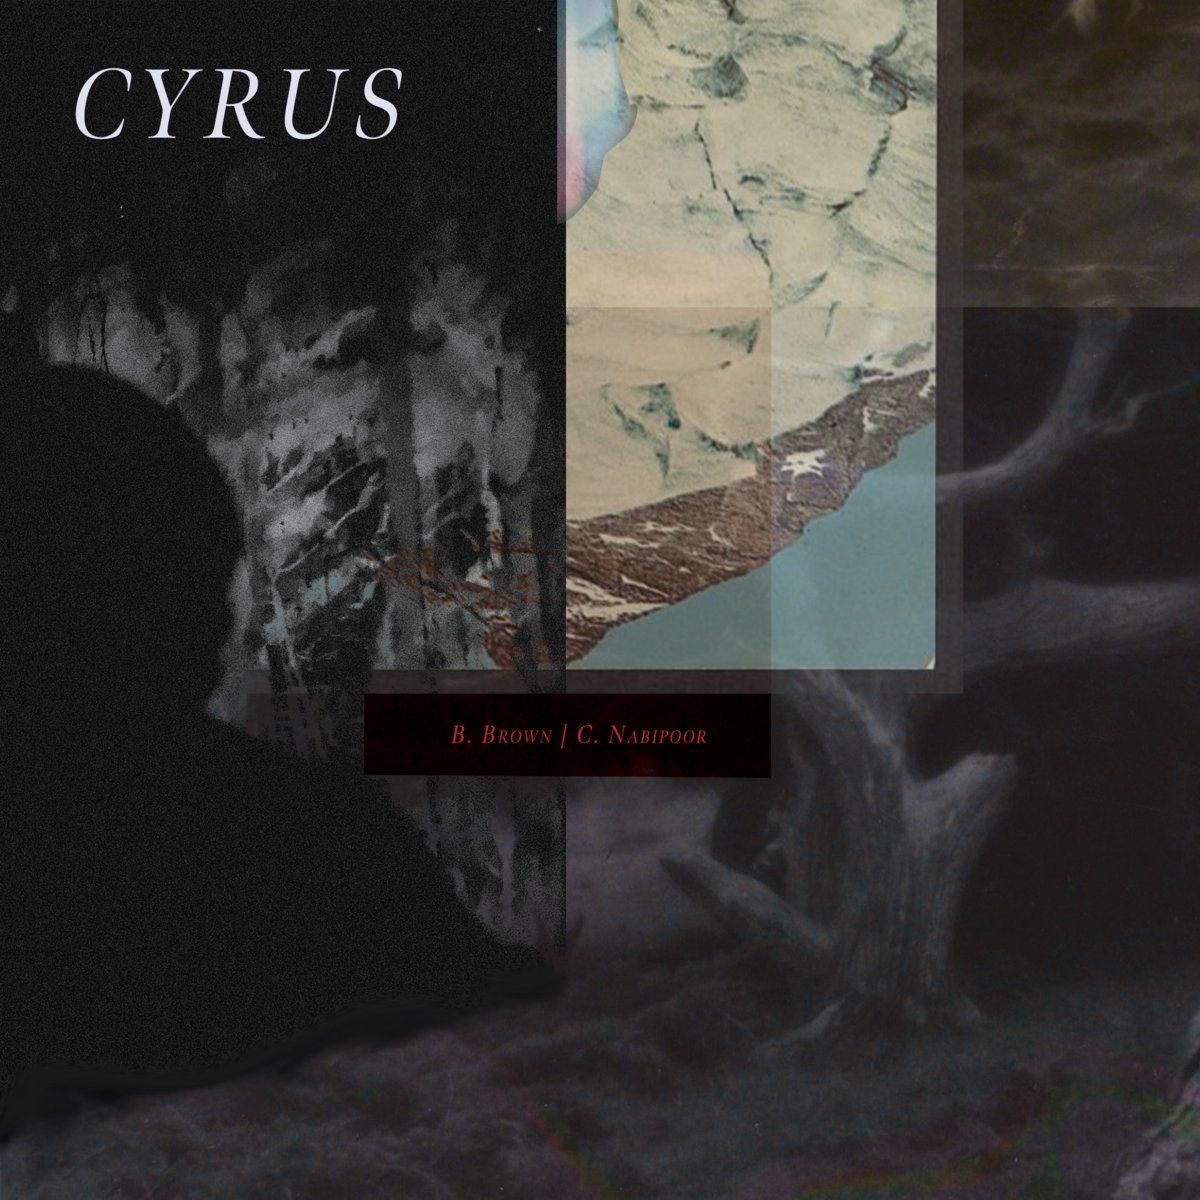 CYRUS by Barra Brown